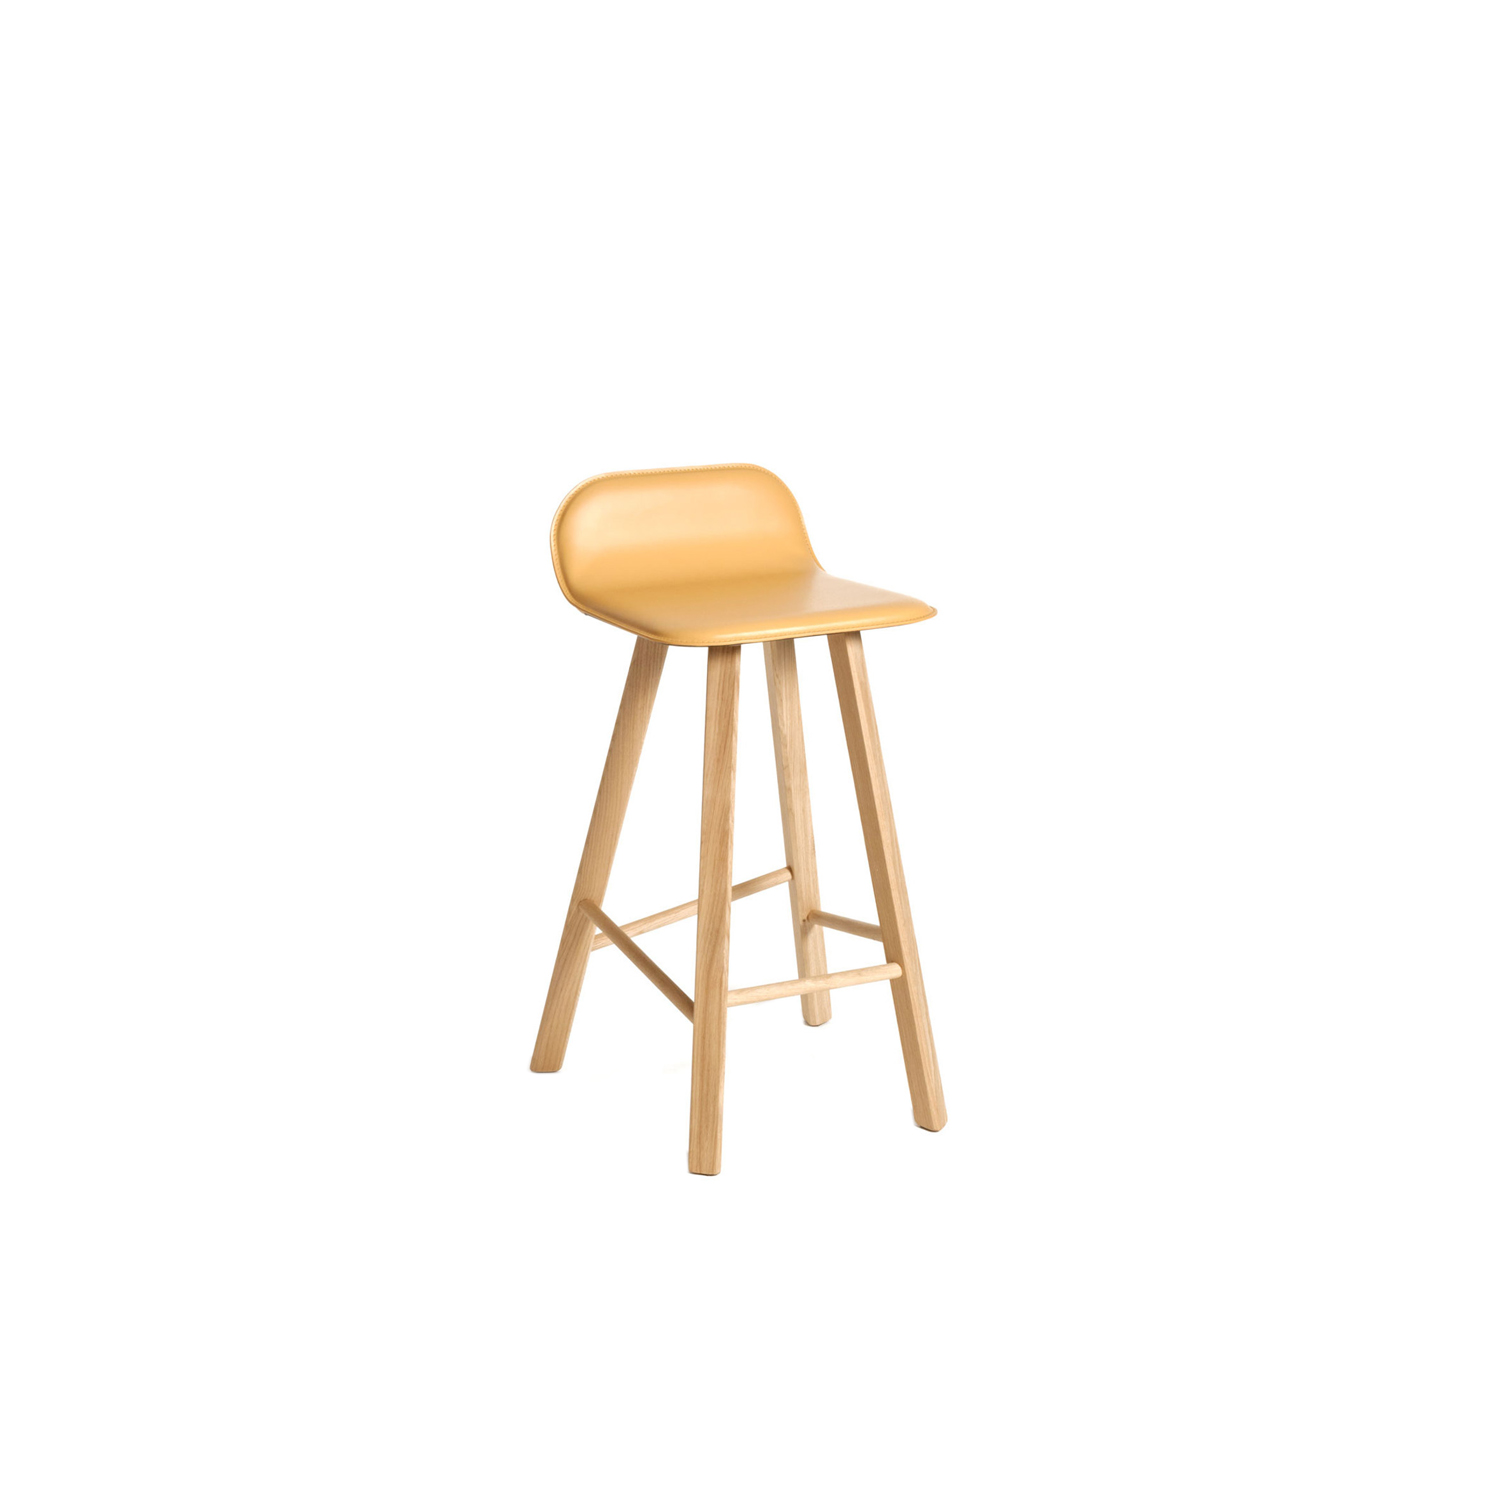 Tria Stool Low Back Upholstered  - Variation on Tria Simple, this stool is suitable both for homes and contract with the 2 version low back LB or high back HB. Bent plywood shell, available in 3 different variations  Legs in solid oak with triangular section. Shell in curved plywood oak veneered or upholstered with fabric or leather. Custom colour (min 4 units) and custom veneer (min 20 units).   A wide range of fabrics: cotton, felt, linen, eco-leather, wool, velvet or can be coated with C.O.M. fabric.   | Matter of Stuff